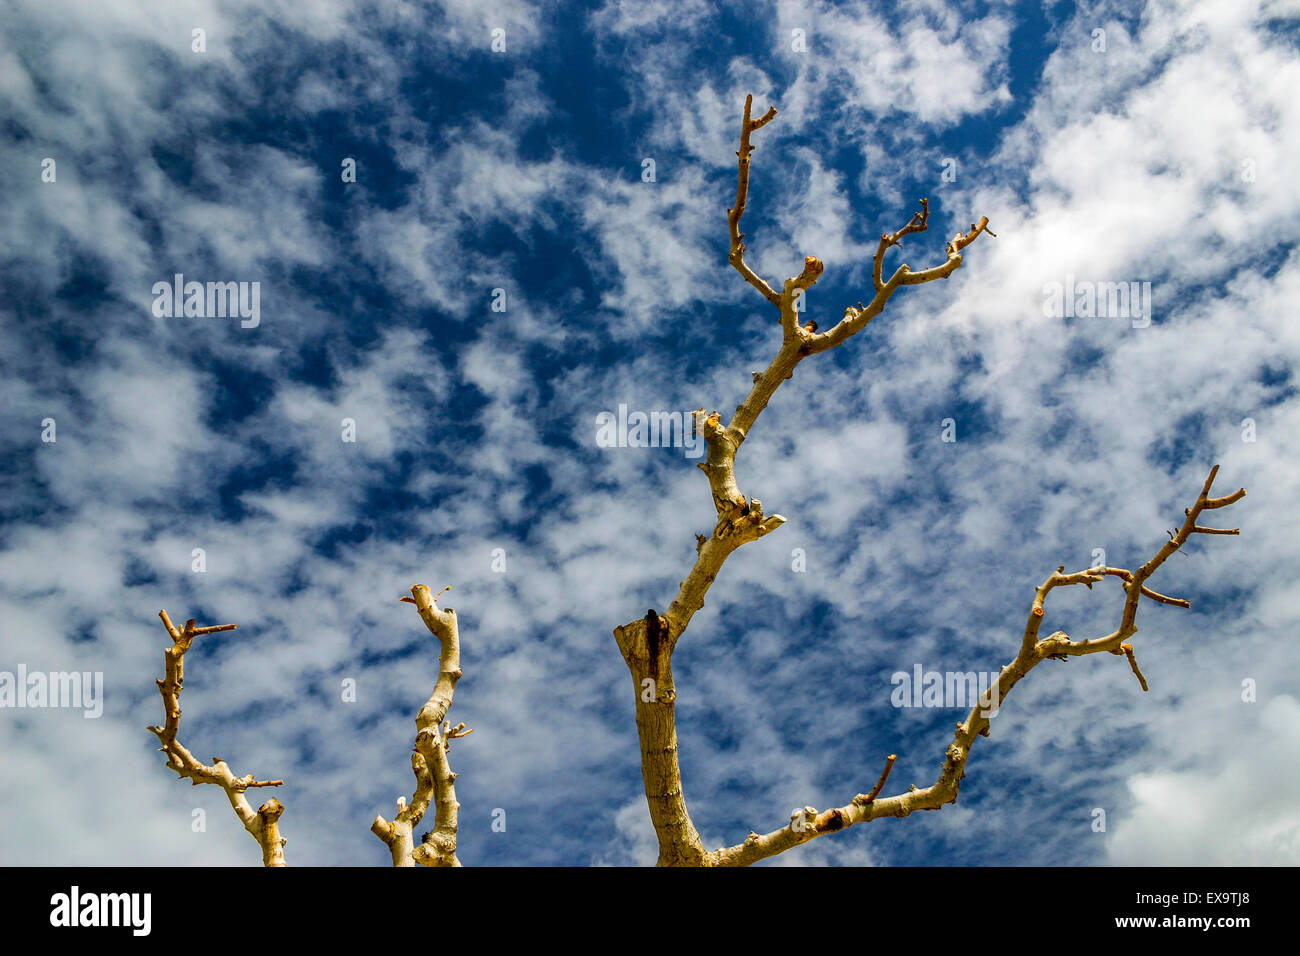 Tree against blue sky in Cyprus with fluffy clouds - Stock Image